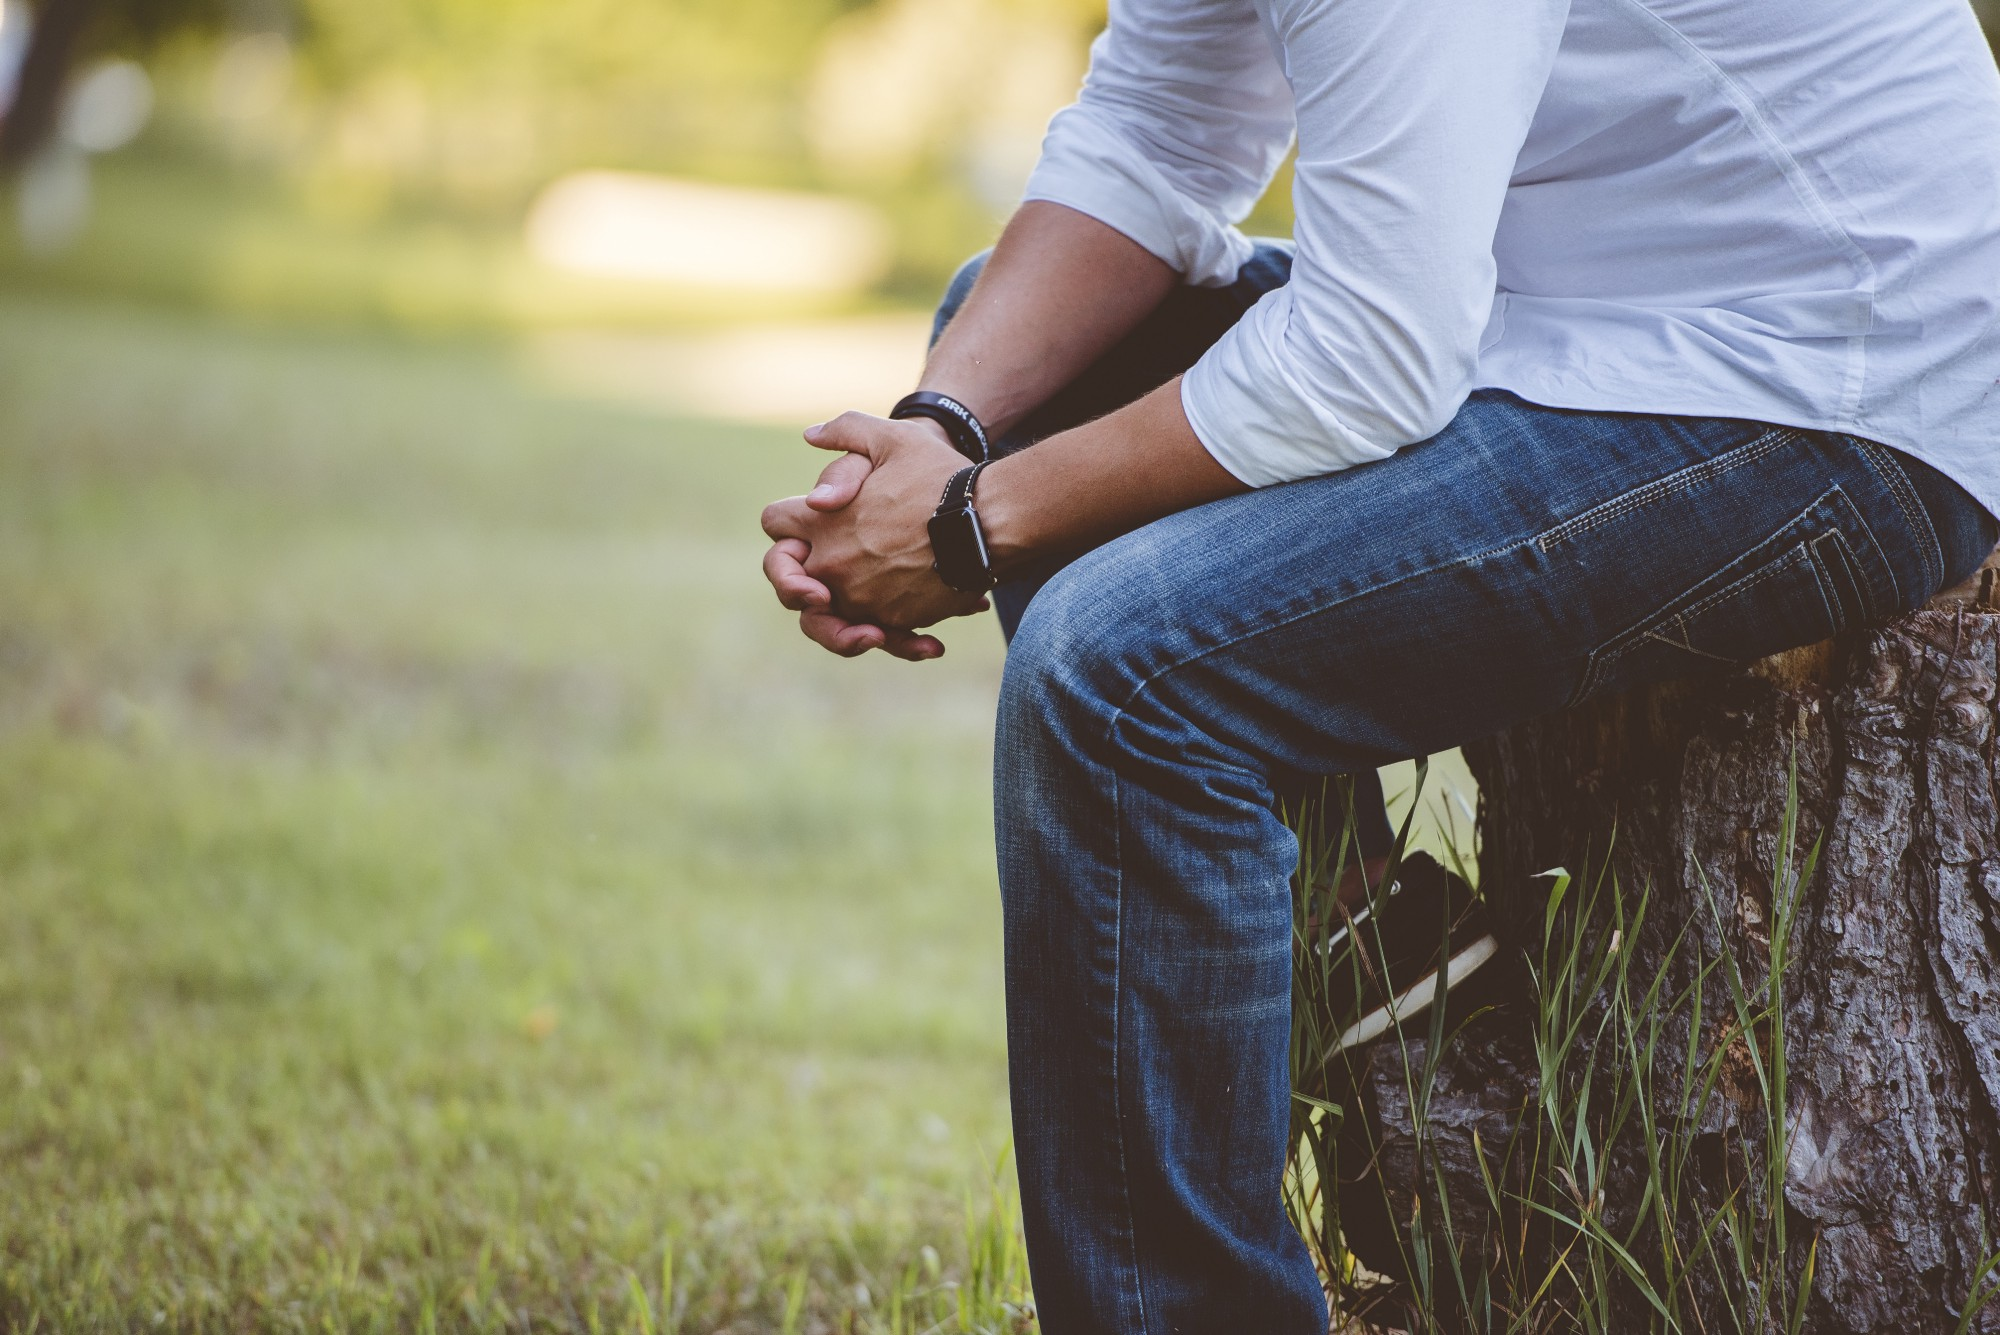 Man in blue jeans and a white shirt praying